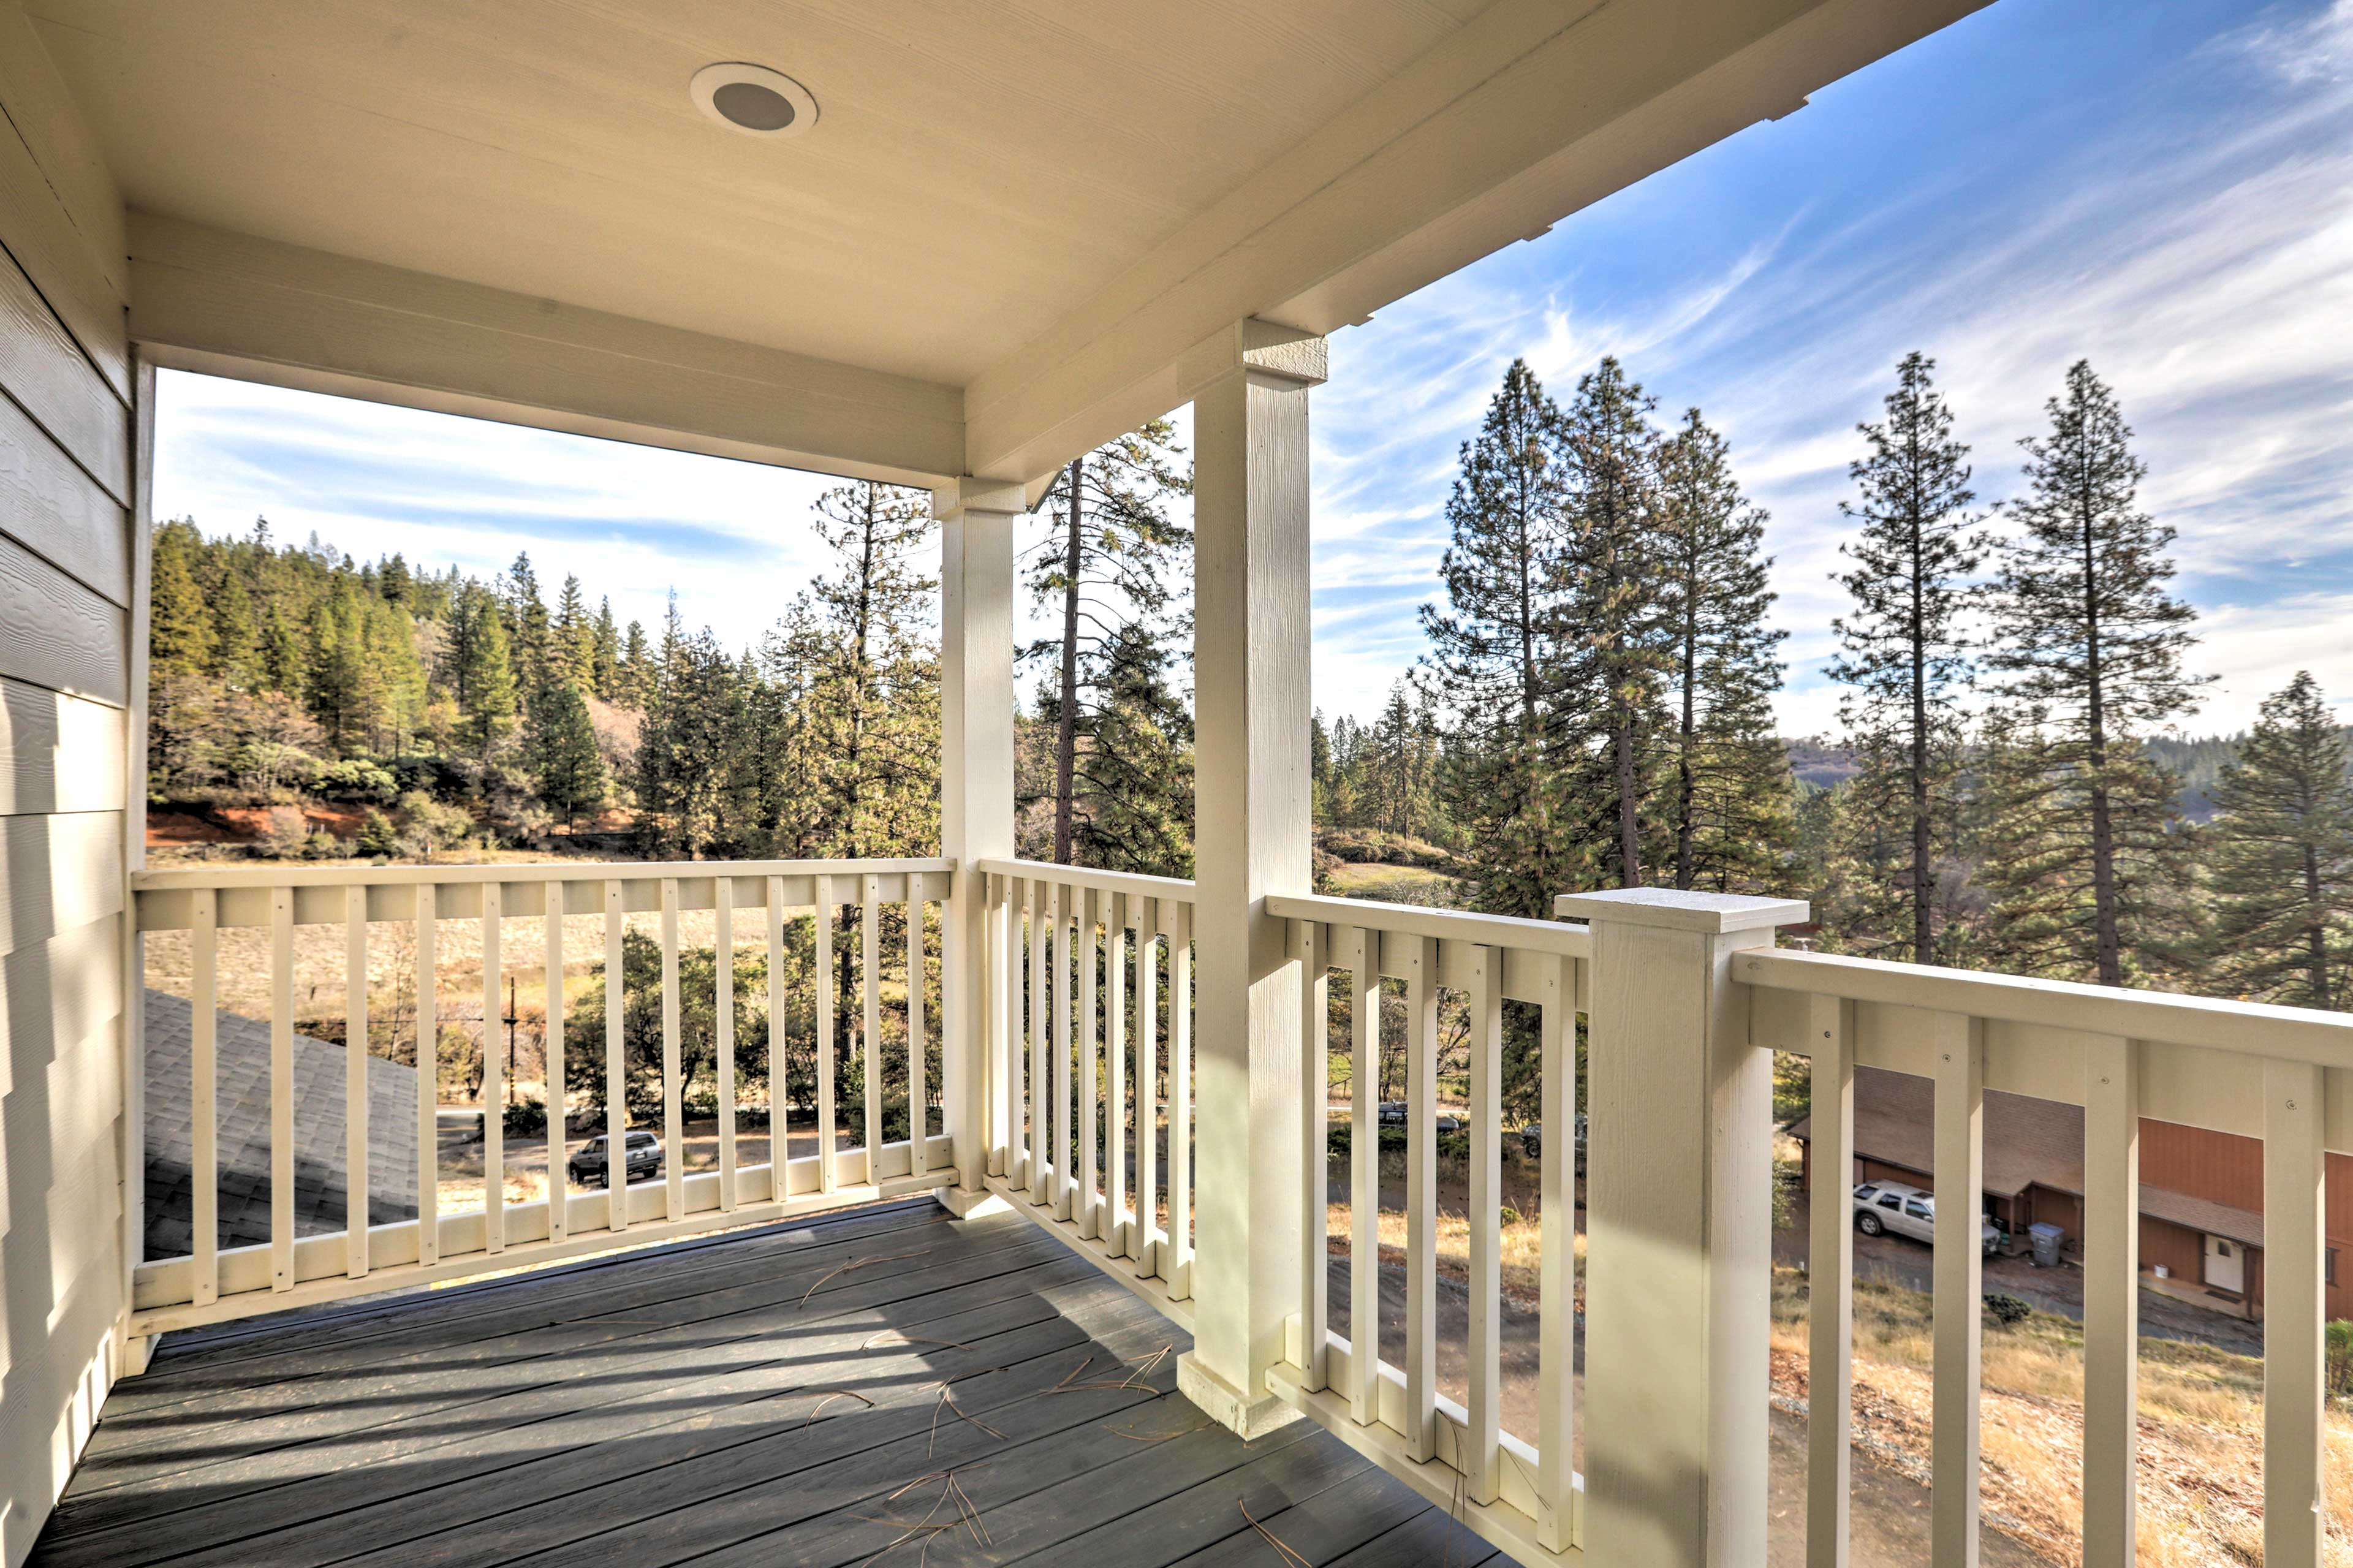 Picturesque Northern California awaits you at the vacation rental home.